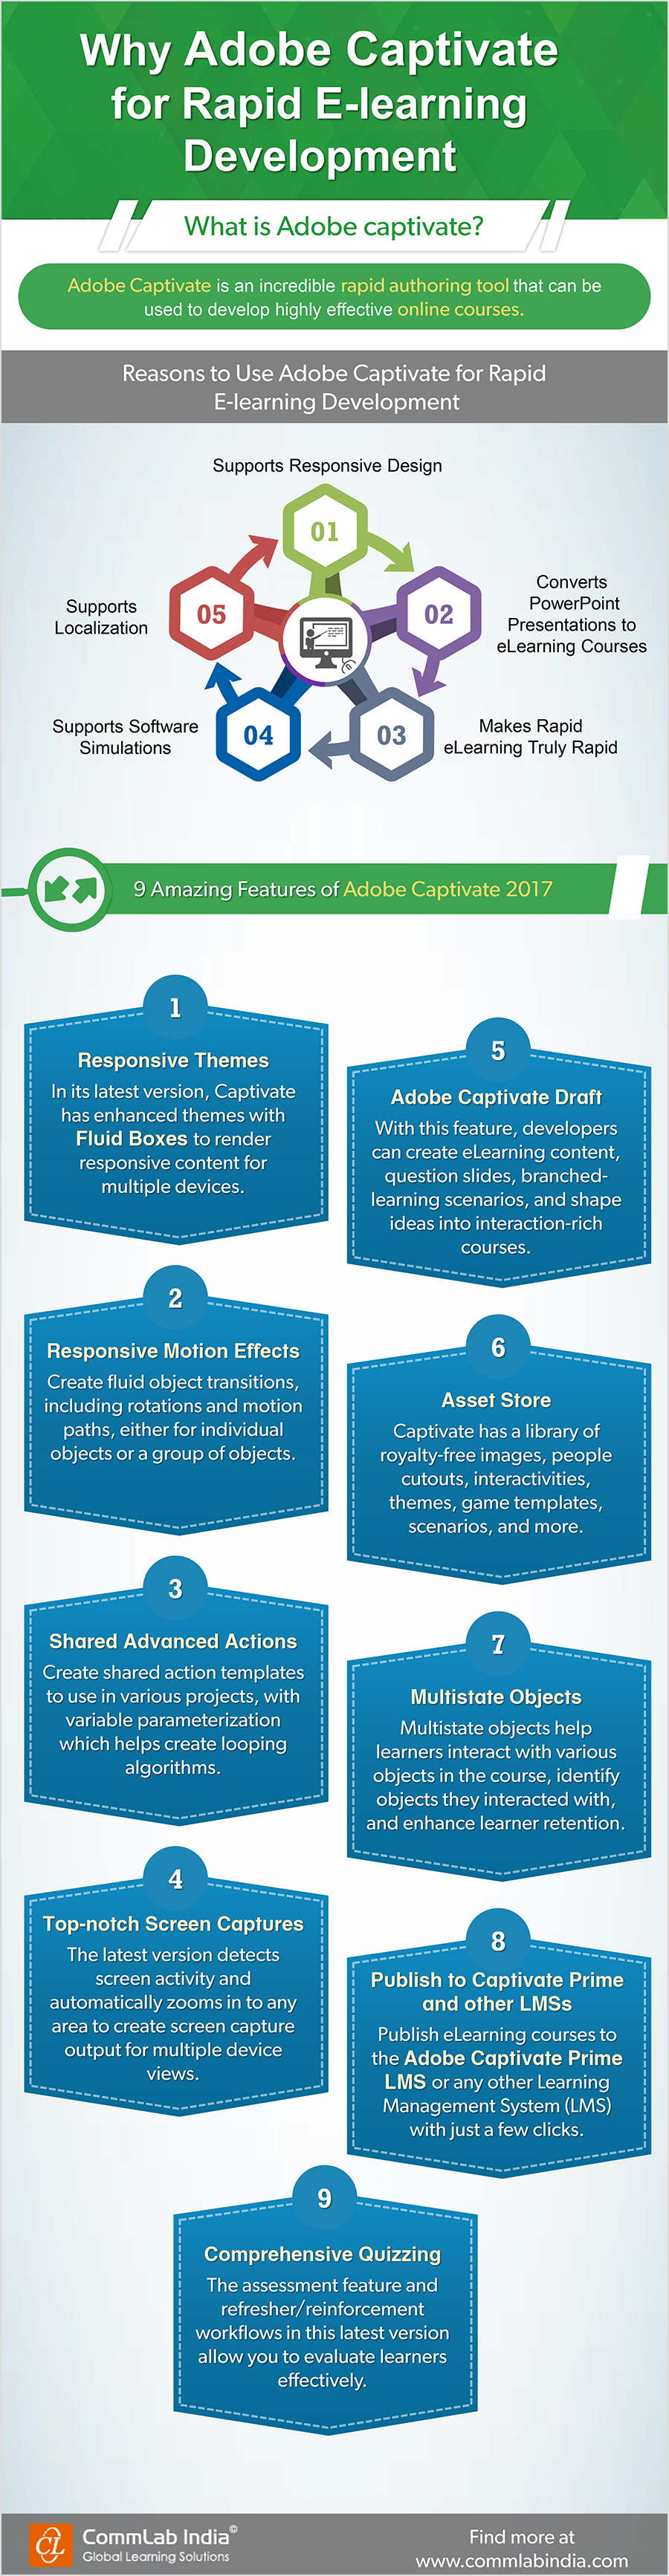 Reasons to Use Adobe Captivate for Rapid eLearning Development